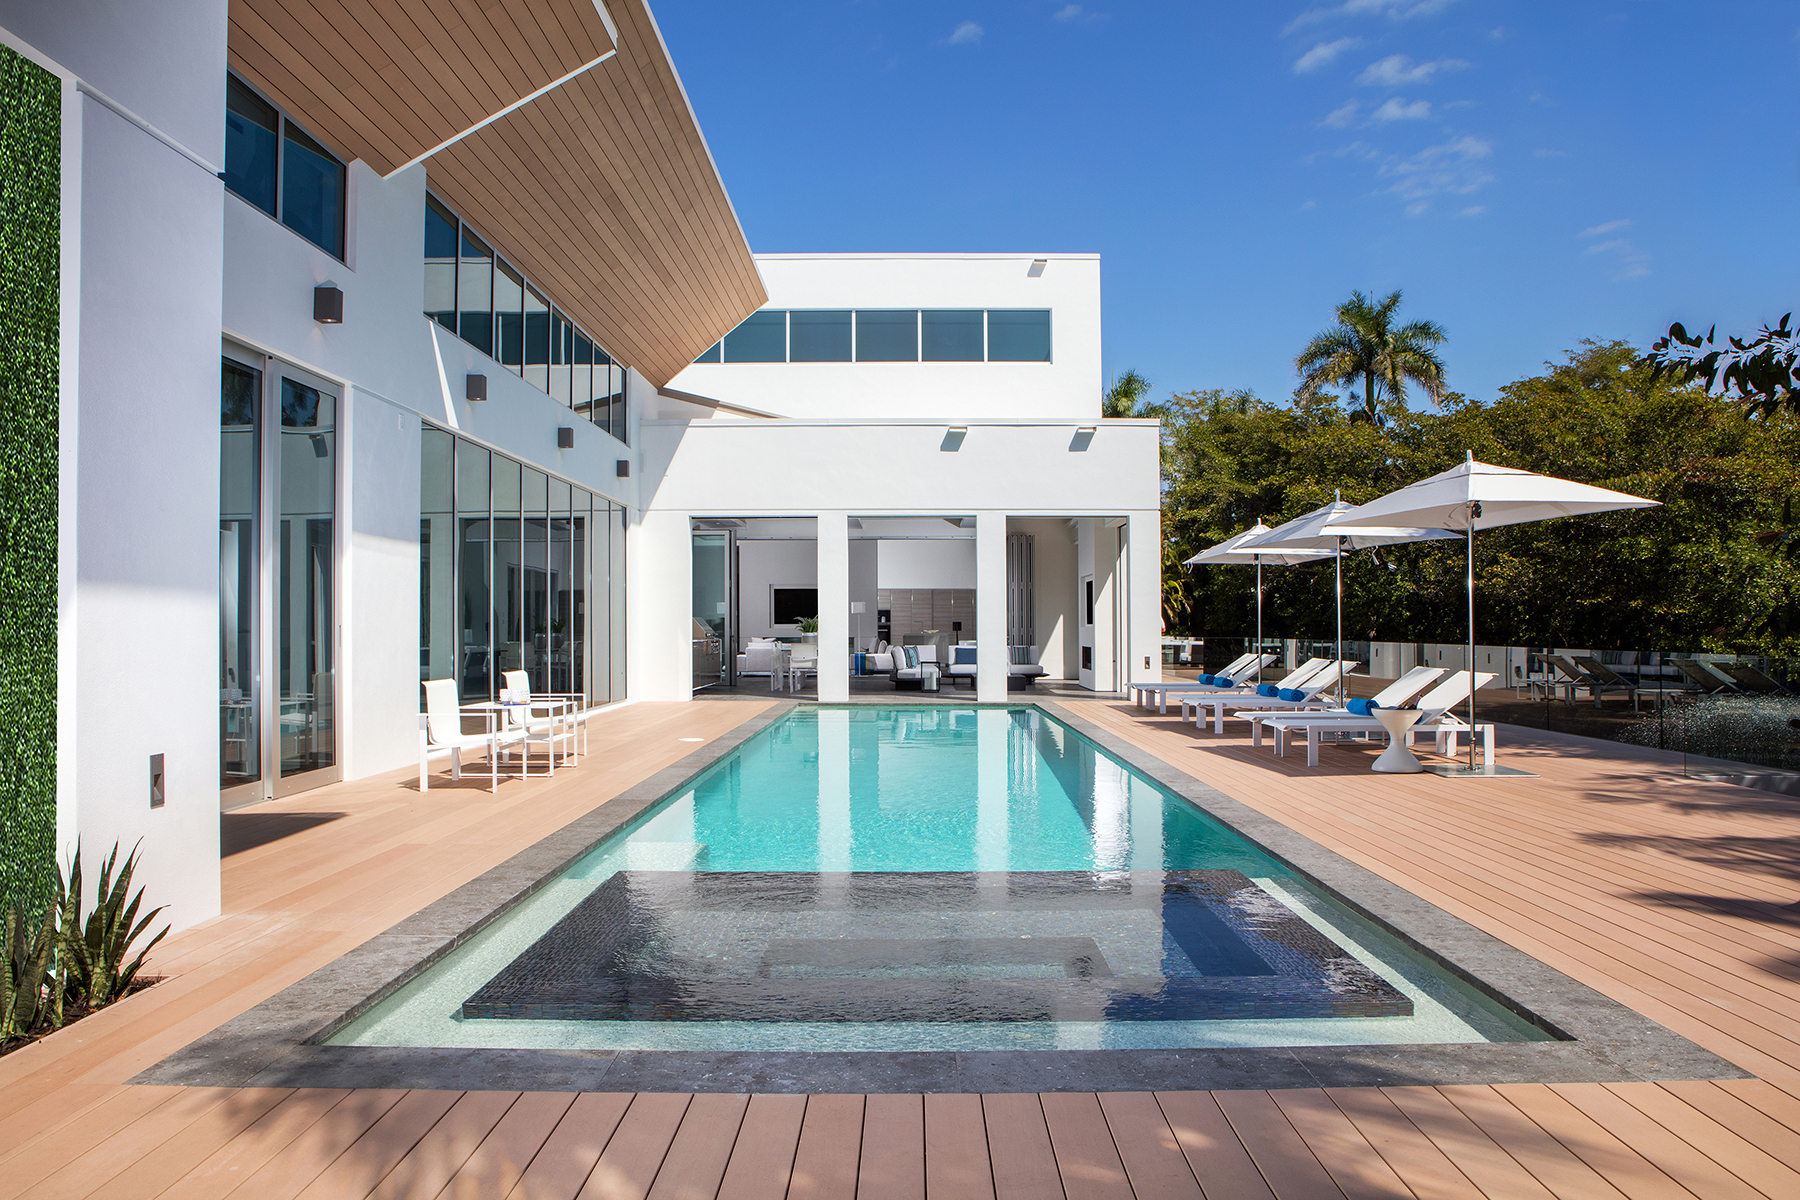 Casa Unifamiliar por un Venta en AQUALANE SHORES 2211 South Winds Dr Naples, Florida 34102 Estados Unidos